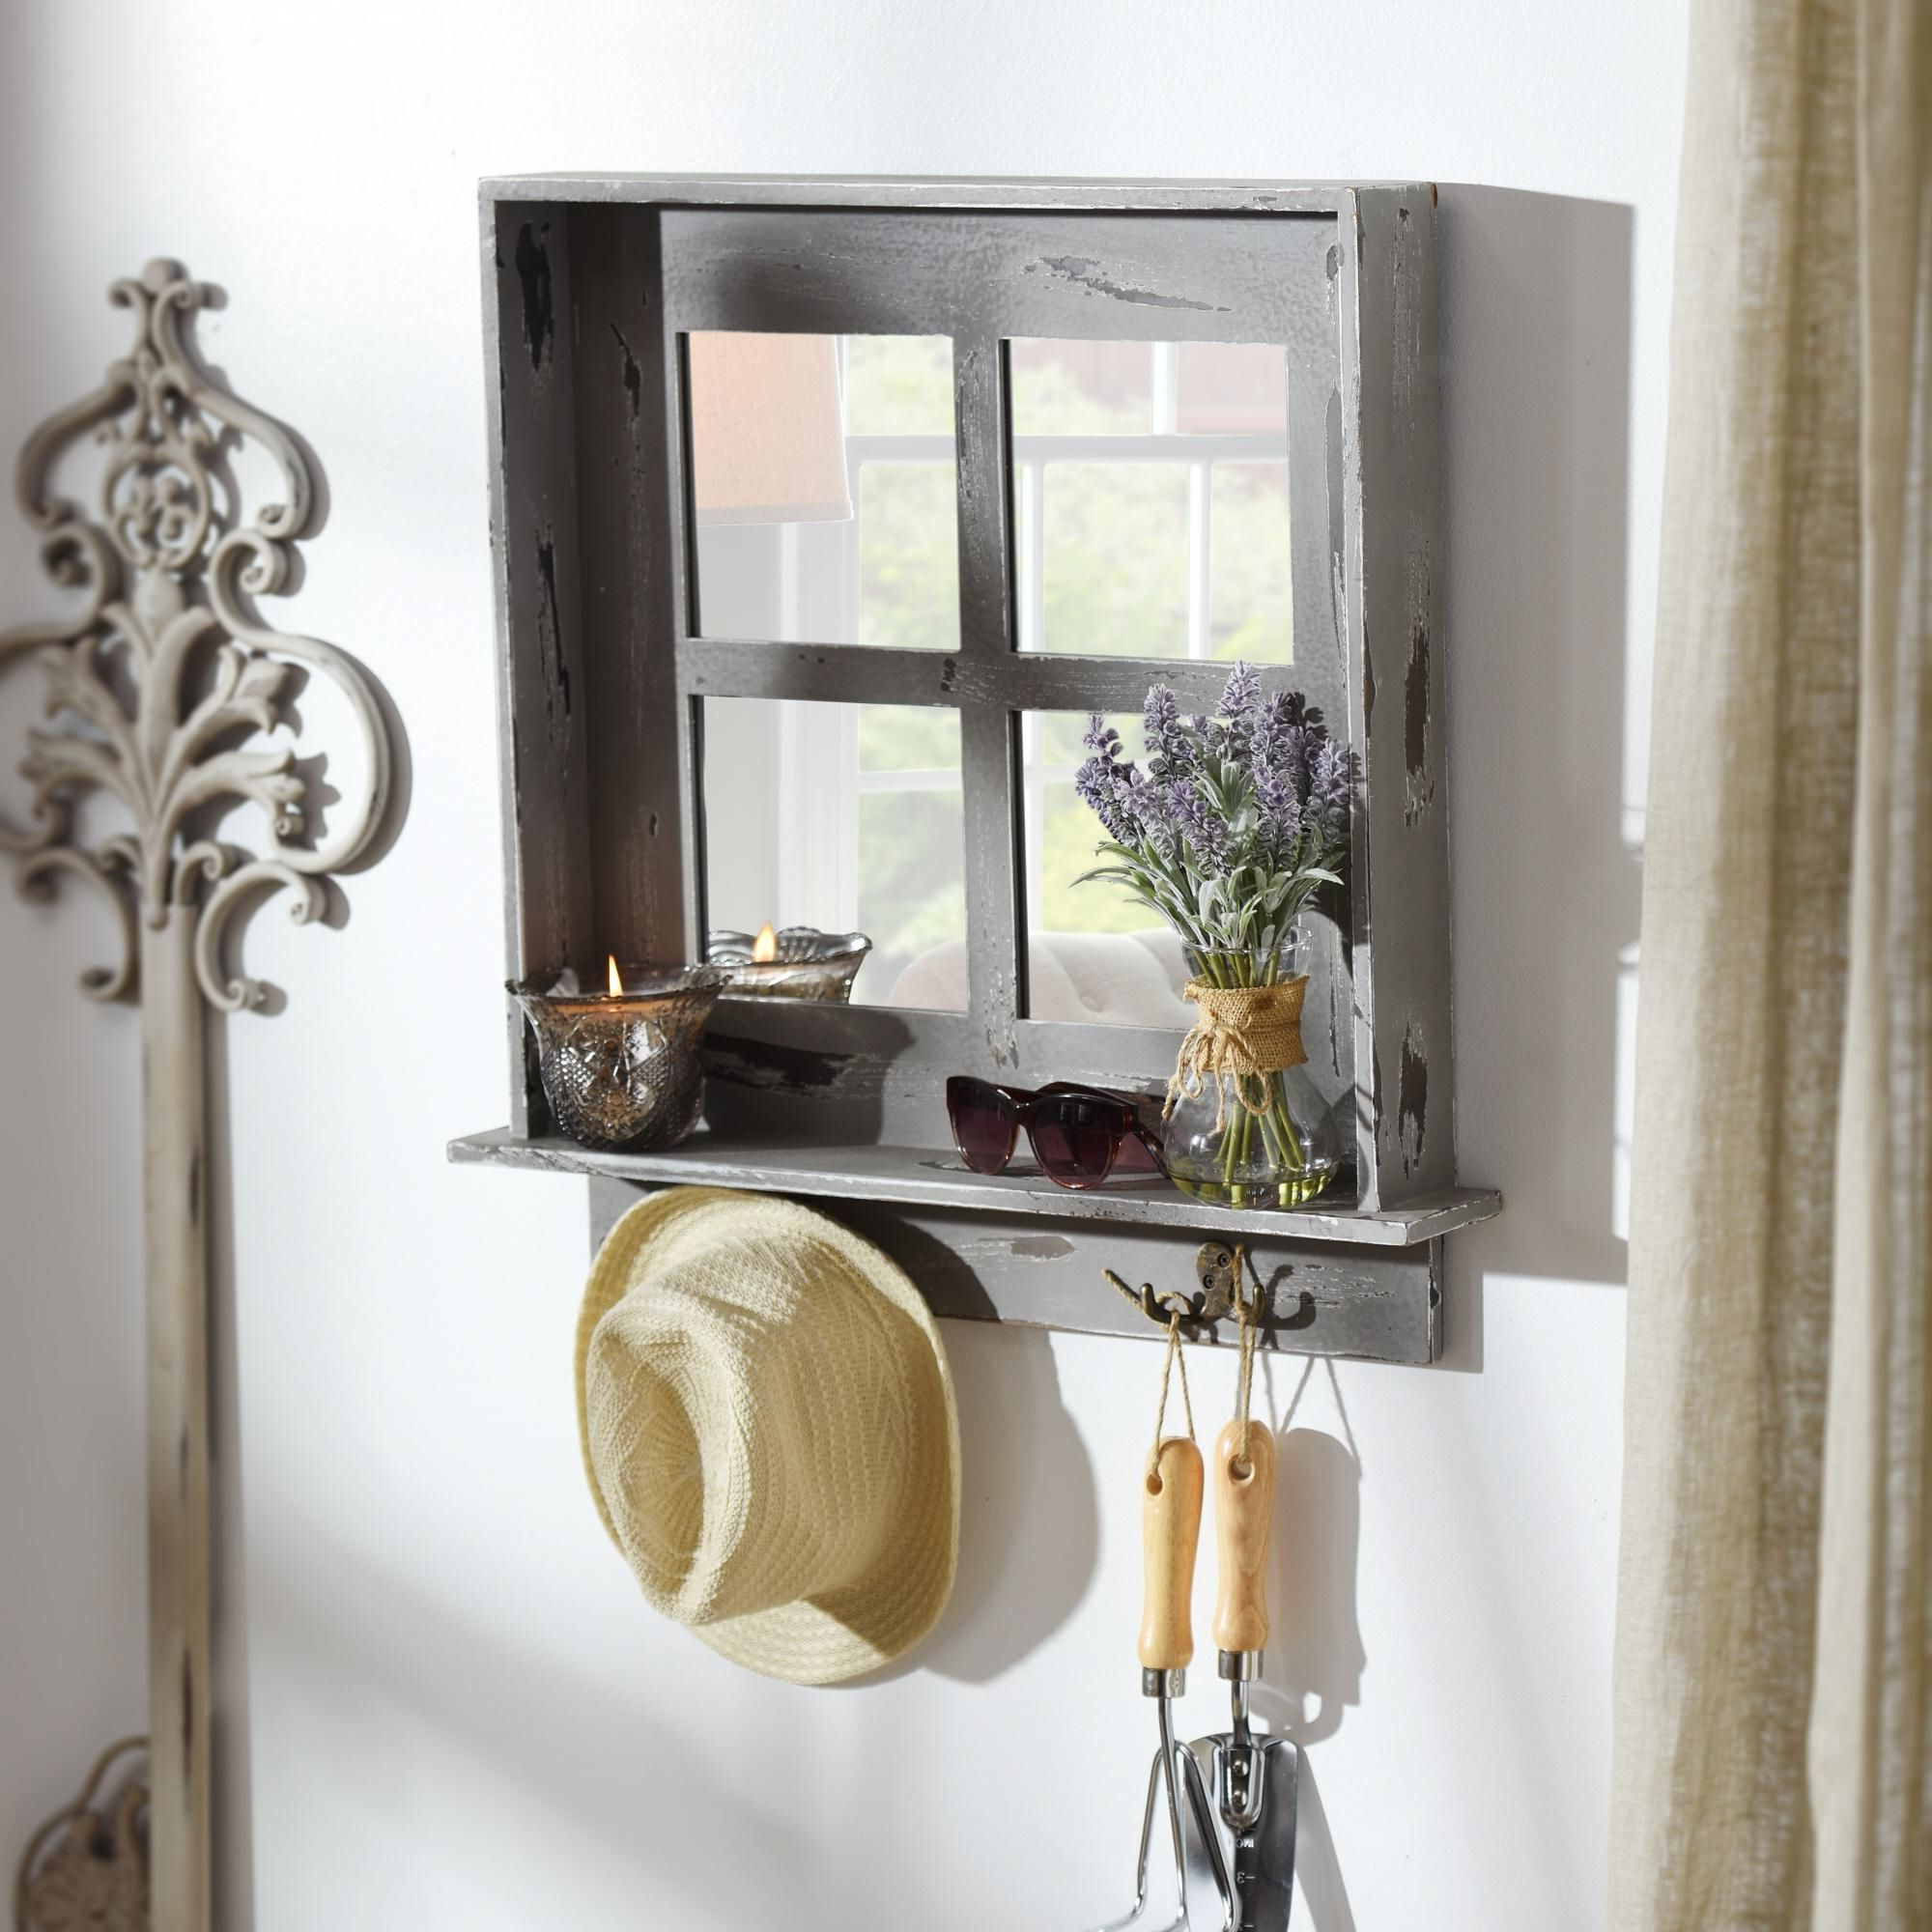 Newest Product Details Gray Window Pane Wall Shelf Mirror With Hooks In Throughout Wall Mirrors With Shelf And Hooks (Gallery 7 of 20)